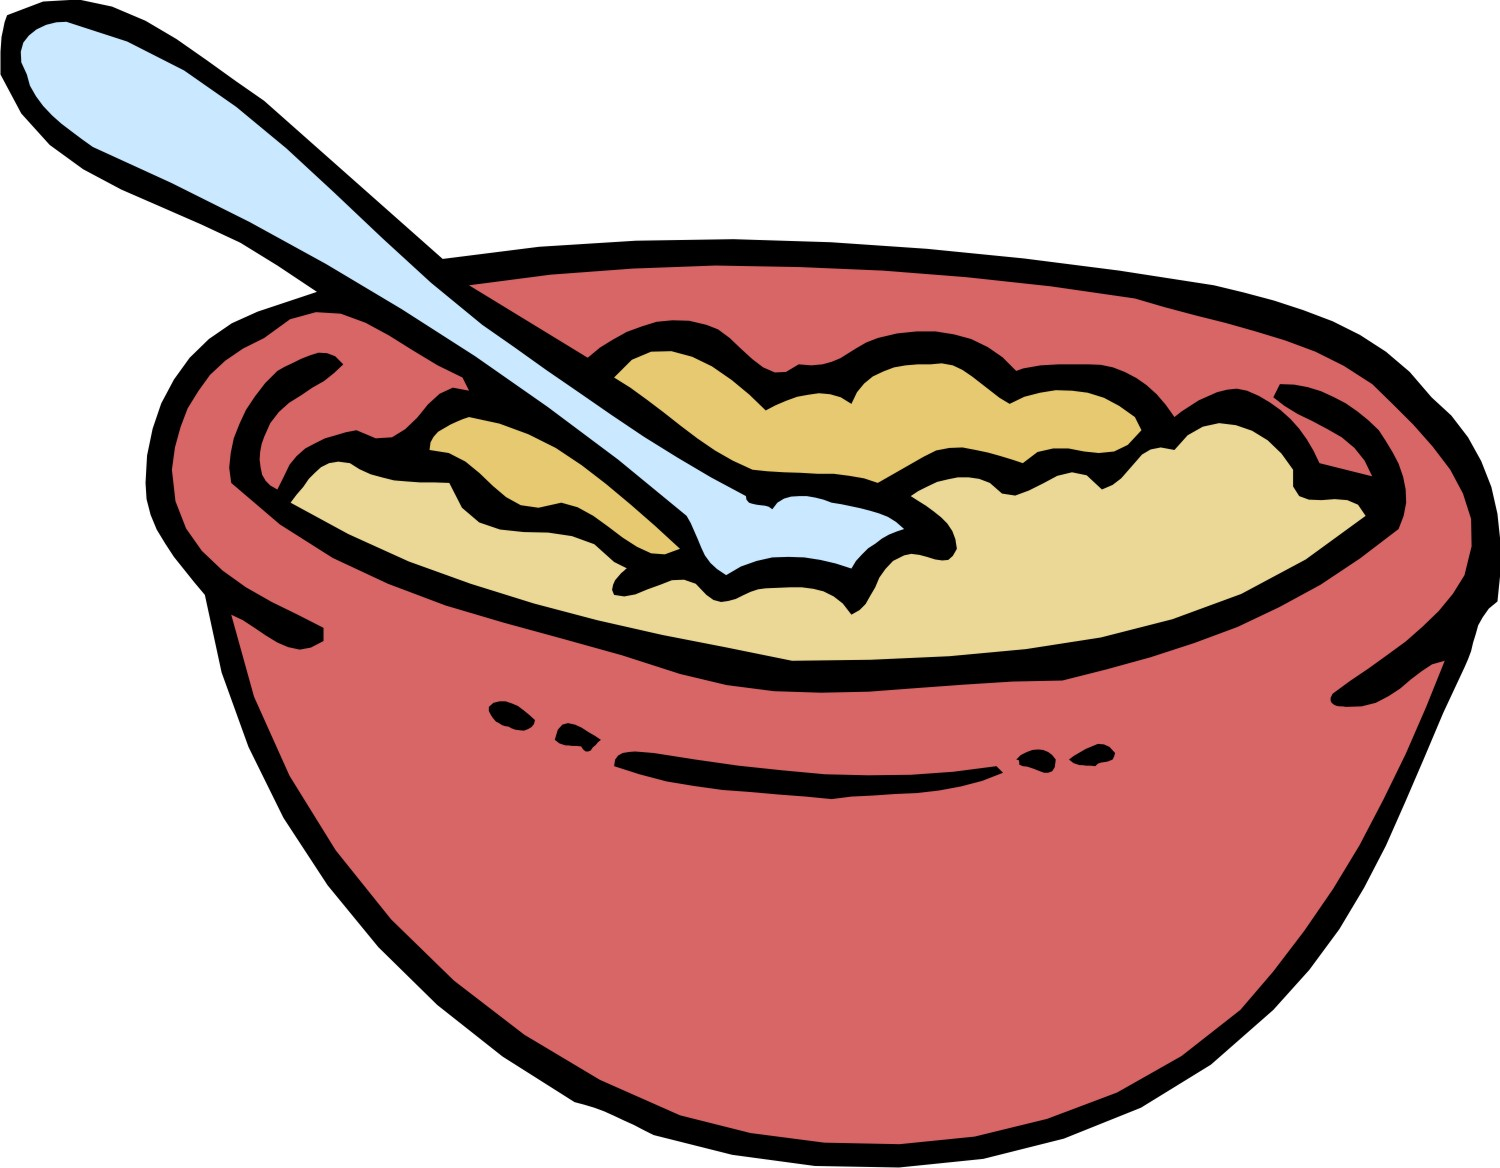 14 cliparts for free. Download Bowl clipart porridge and use.